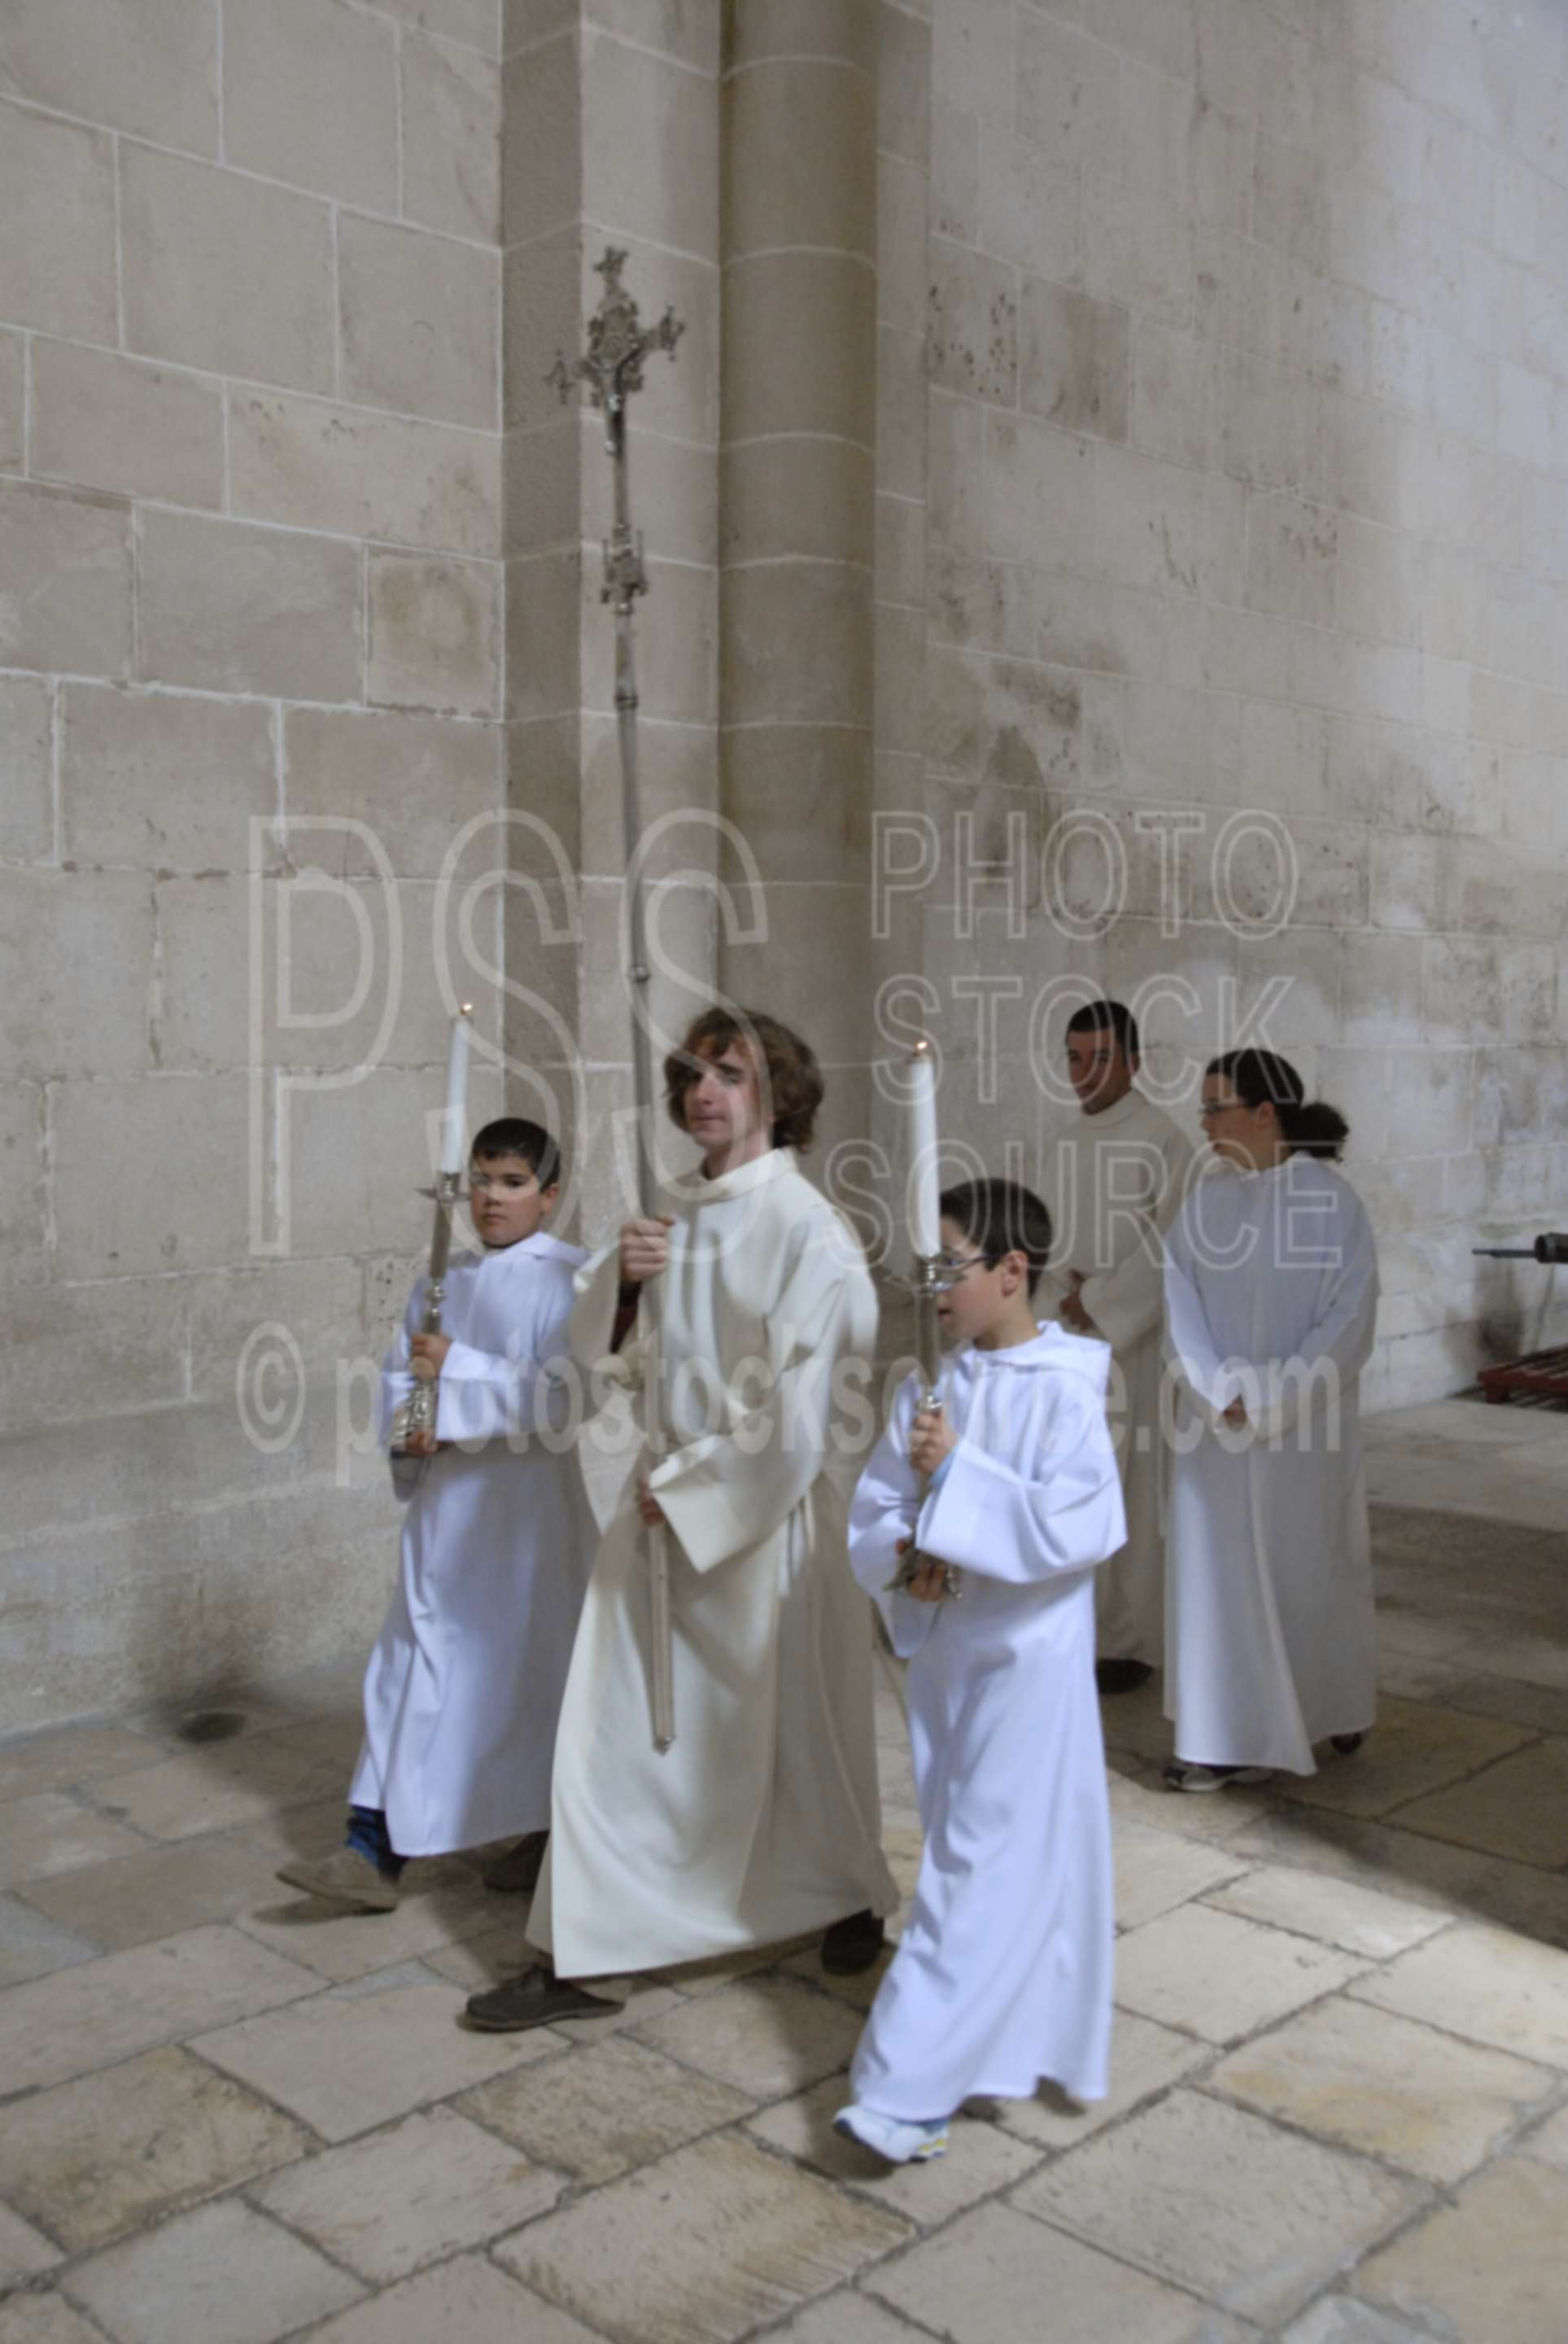 Church Service,monastery,cathedral,abbey,saint mary,christian,religion,religious,mass,religious people,churches